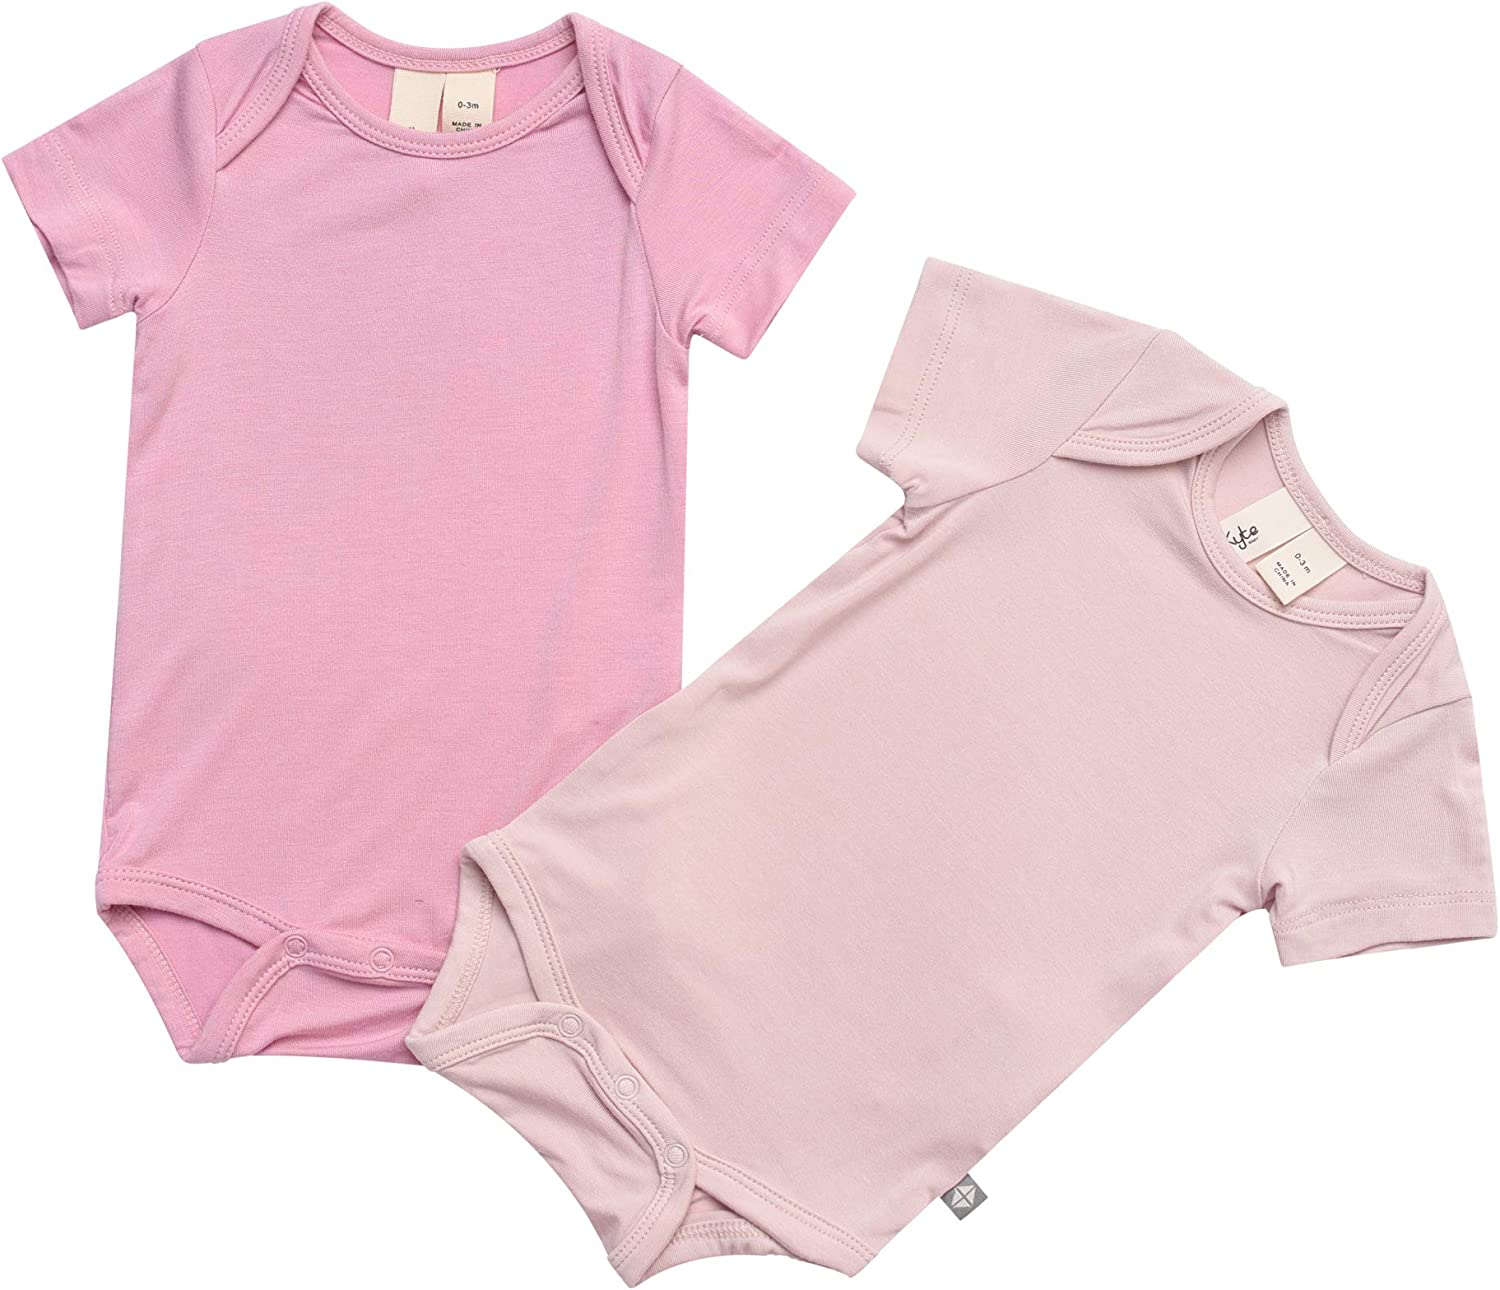 KYTE BABY Bodysuit 2-Pack Short Sleeve Baby Bodysuits Made from Bamboo Rayon Material Unisex Bodysuits